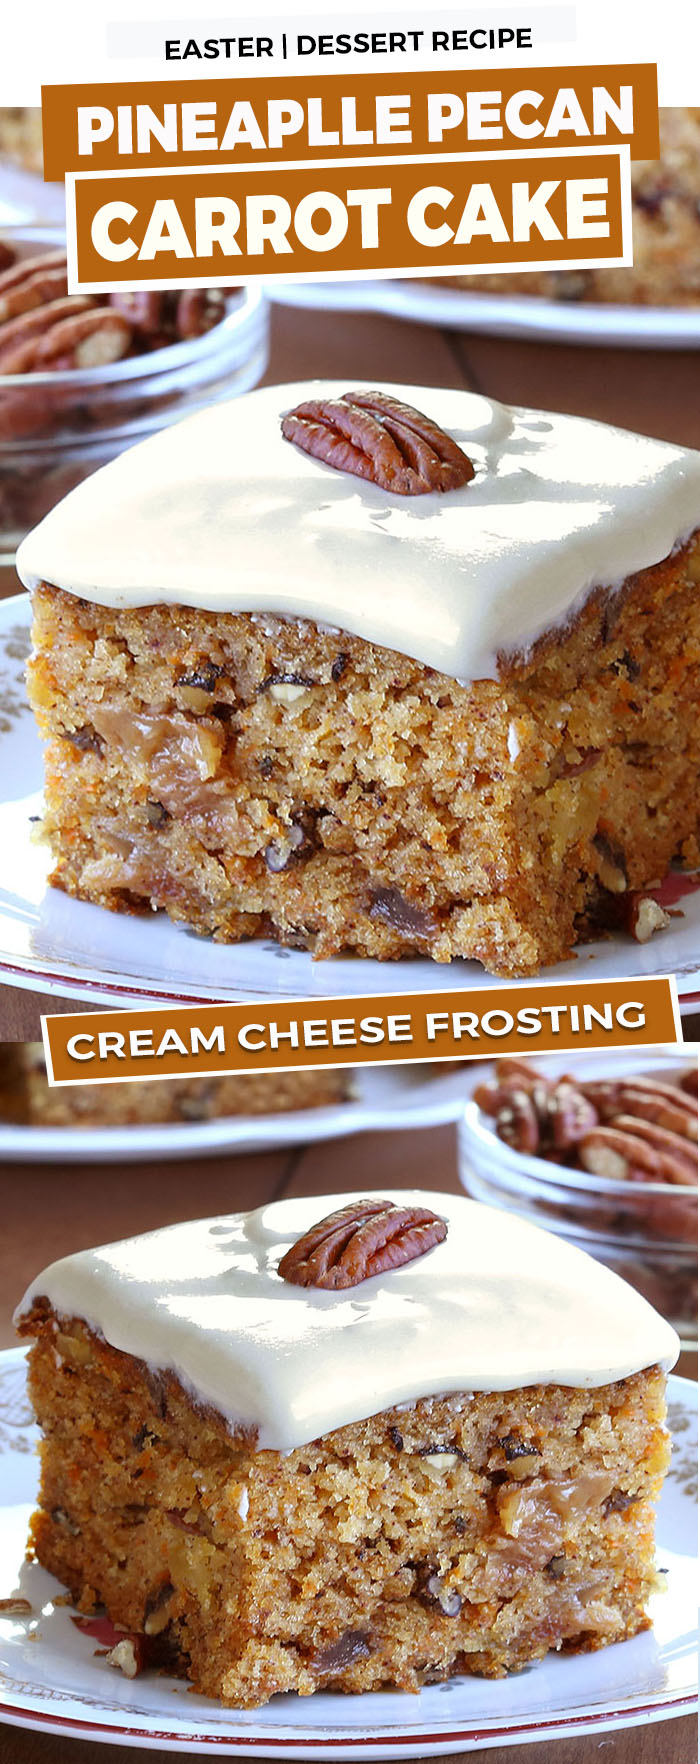 If you're looking for an easy, delicious Easter cake, this Pineapple Pecan Carrot Cake is everything you'd hope for